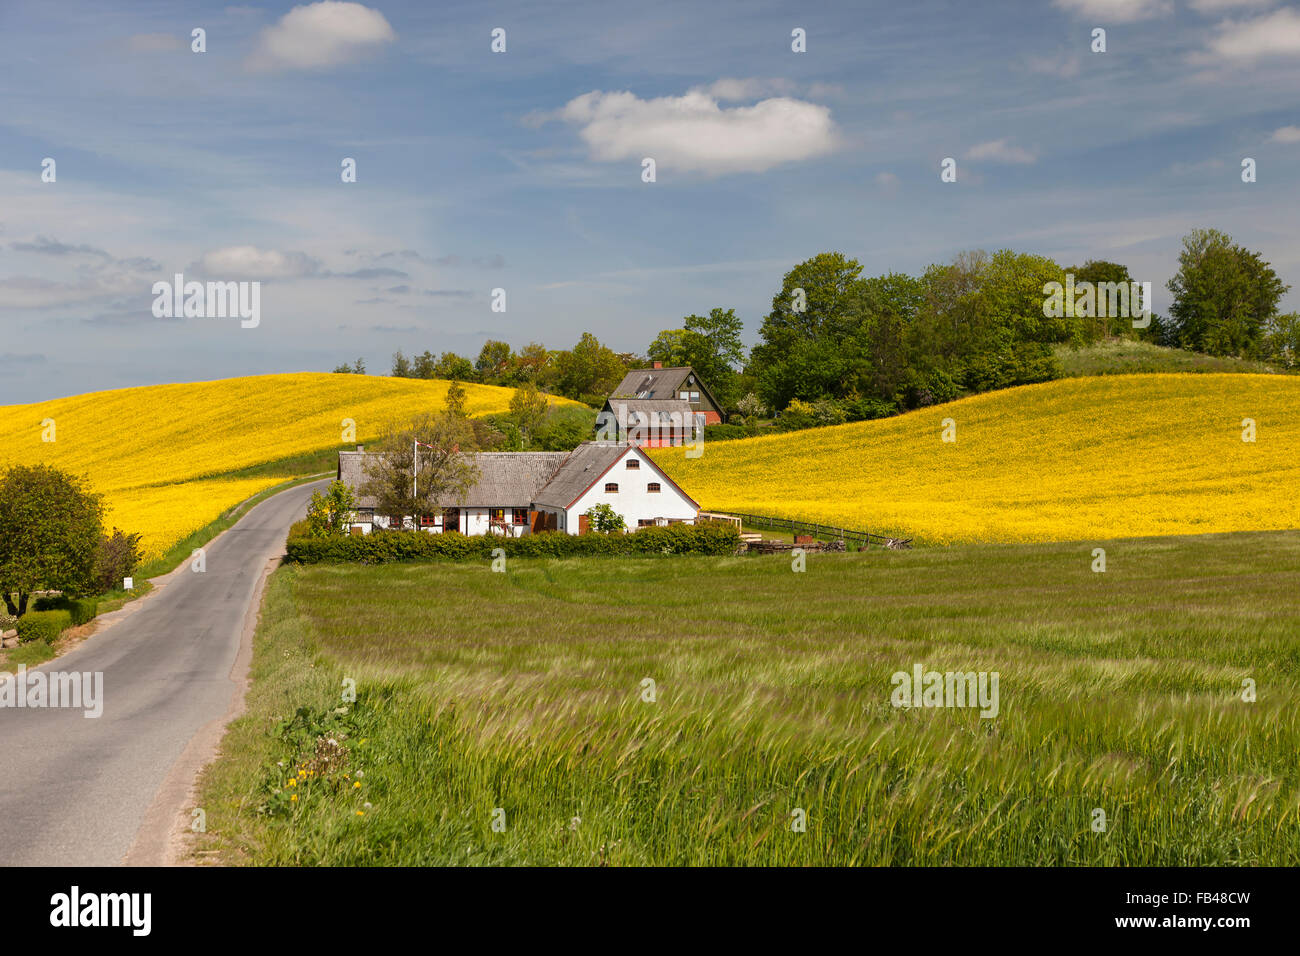 Danish landscape in Zealand, Denmark - Stock Image